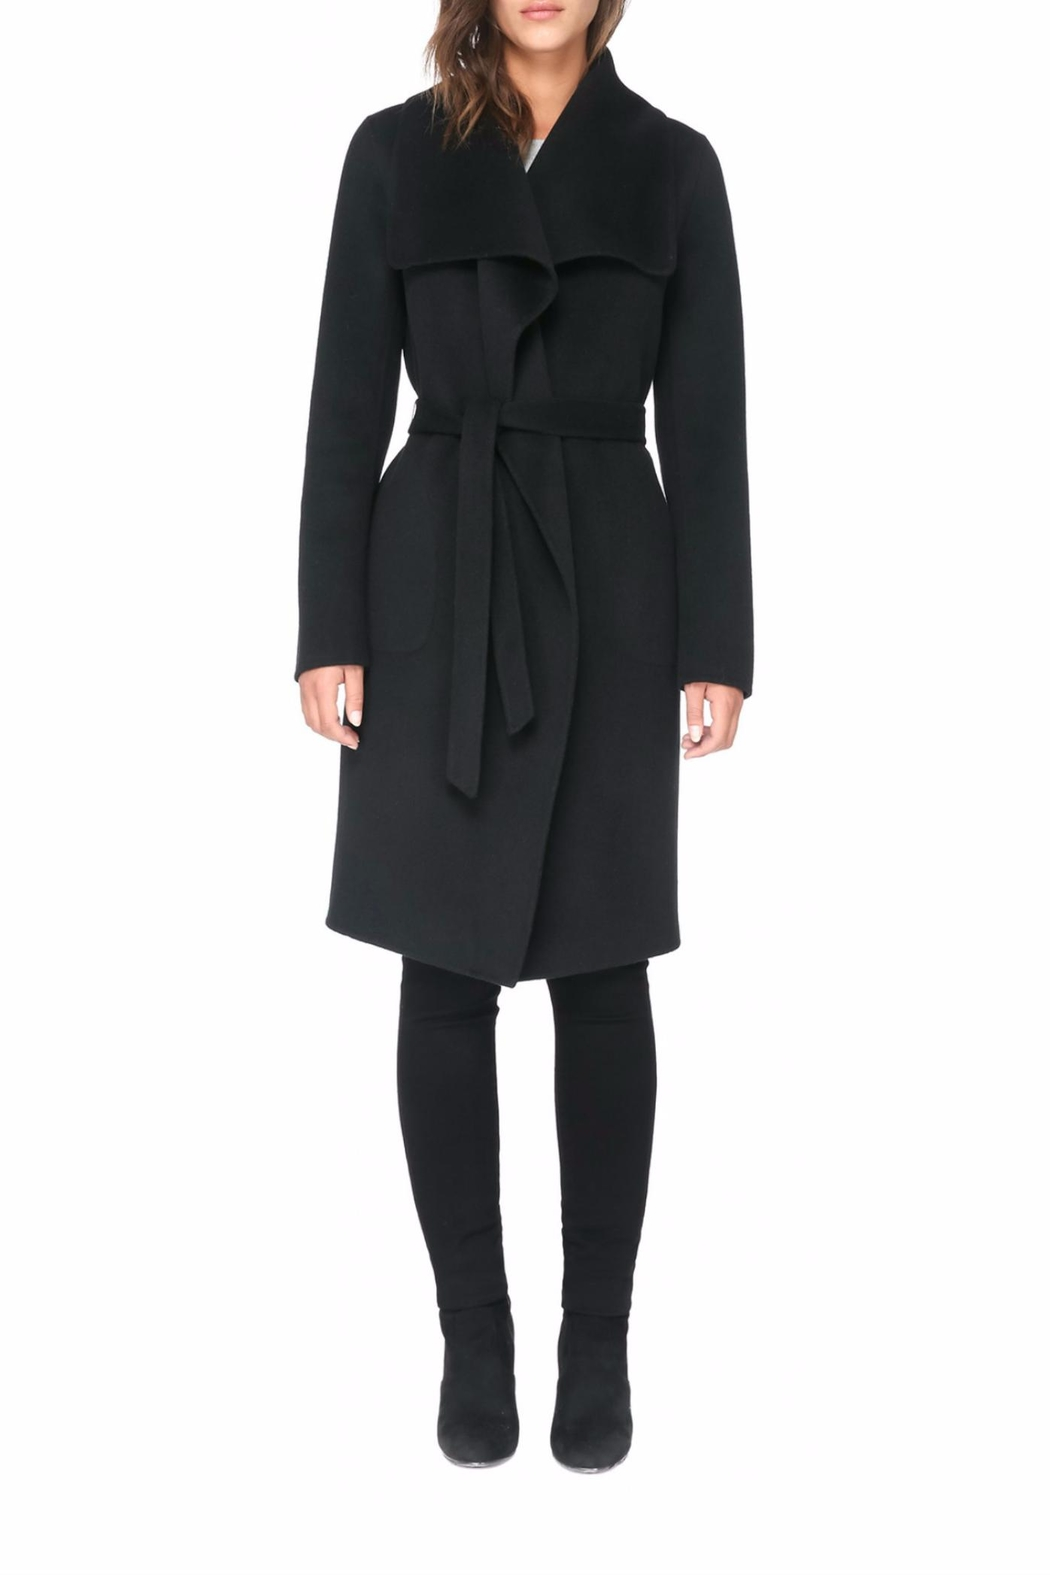 Soia & Kyo Oxana Wool Coat - Main Image